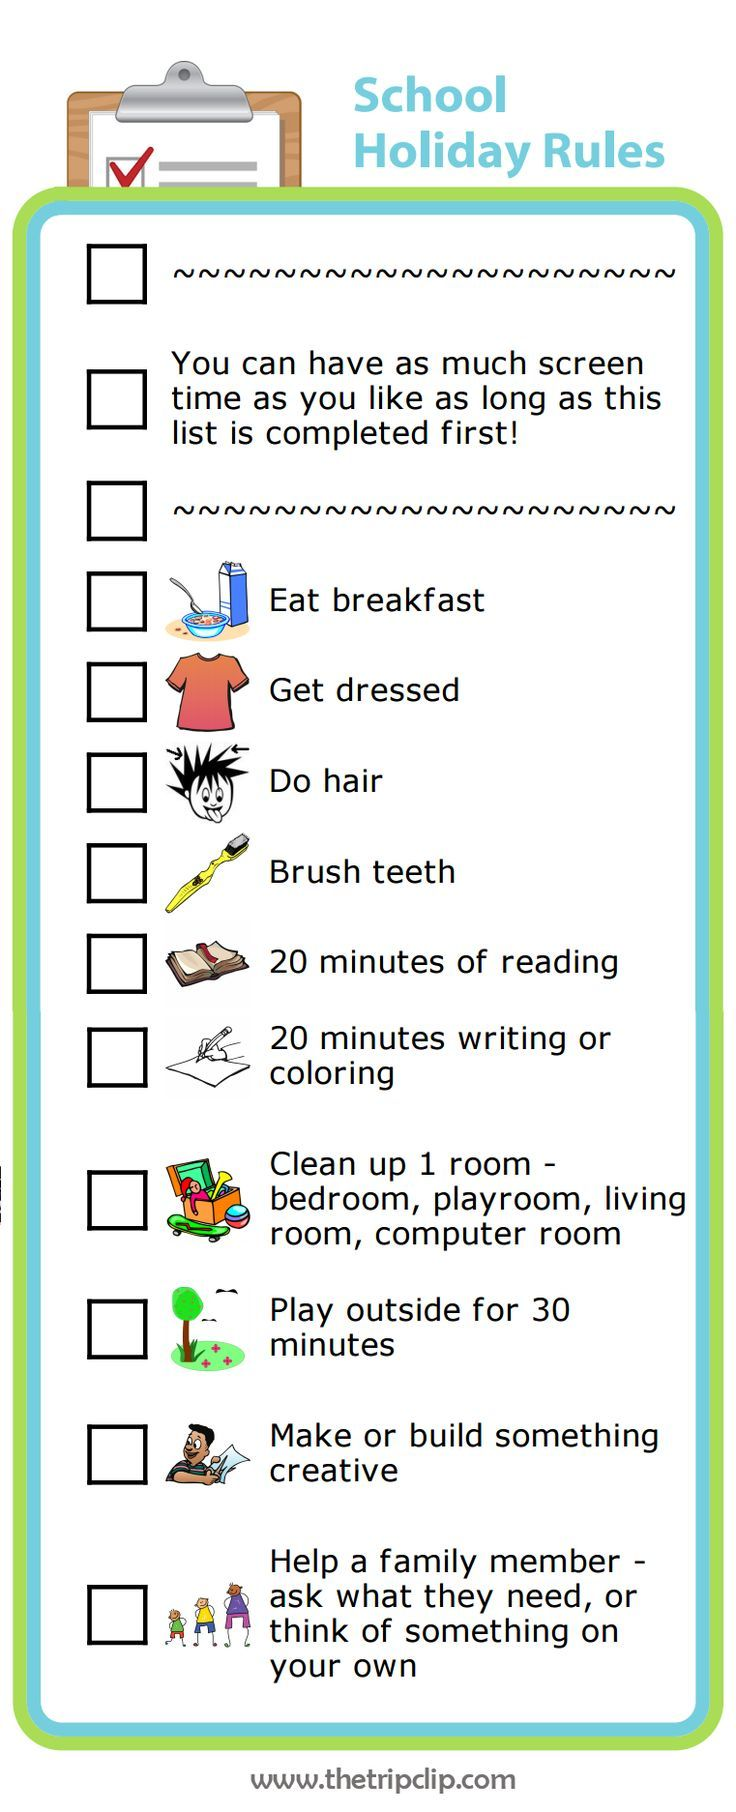 You can easily make your own screen time rules for summer vacation with The Trip Clip custom list maker. Edit it to make it perfect for your family!